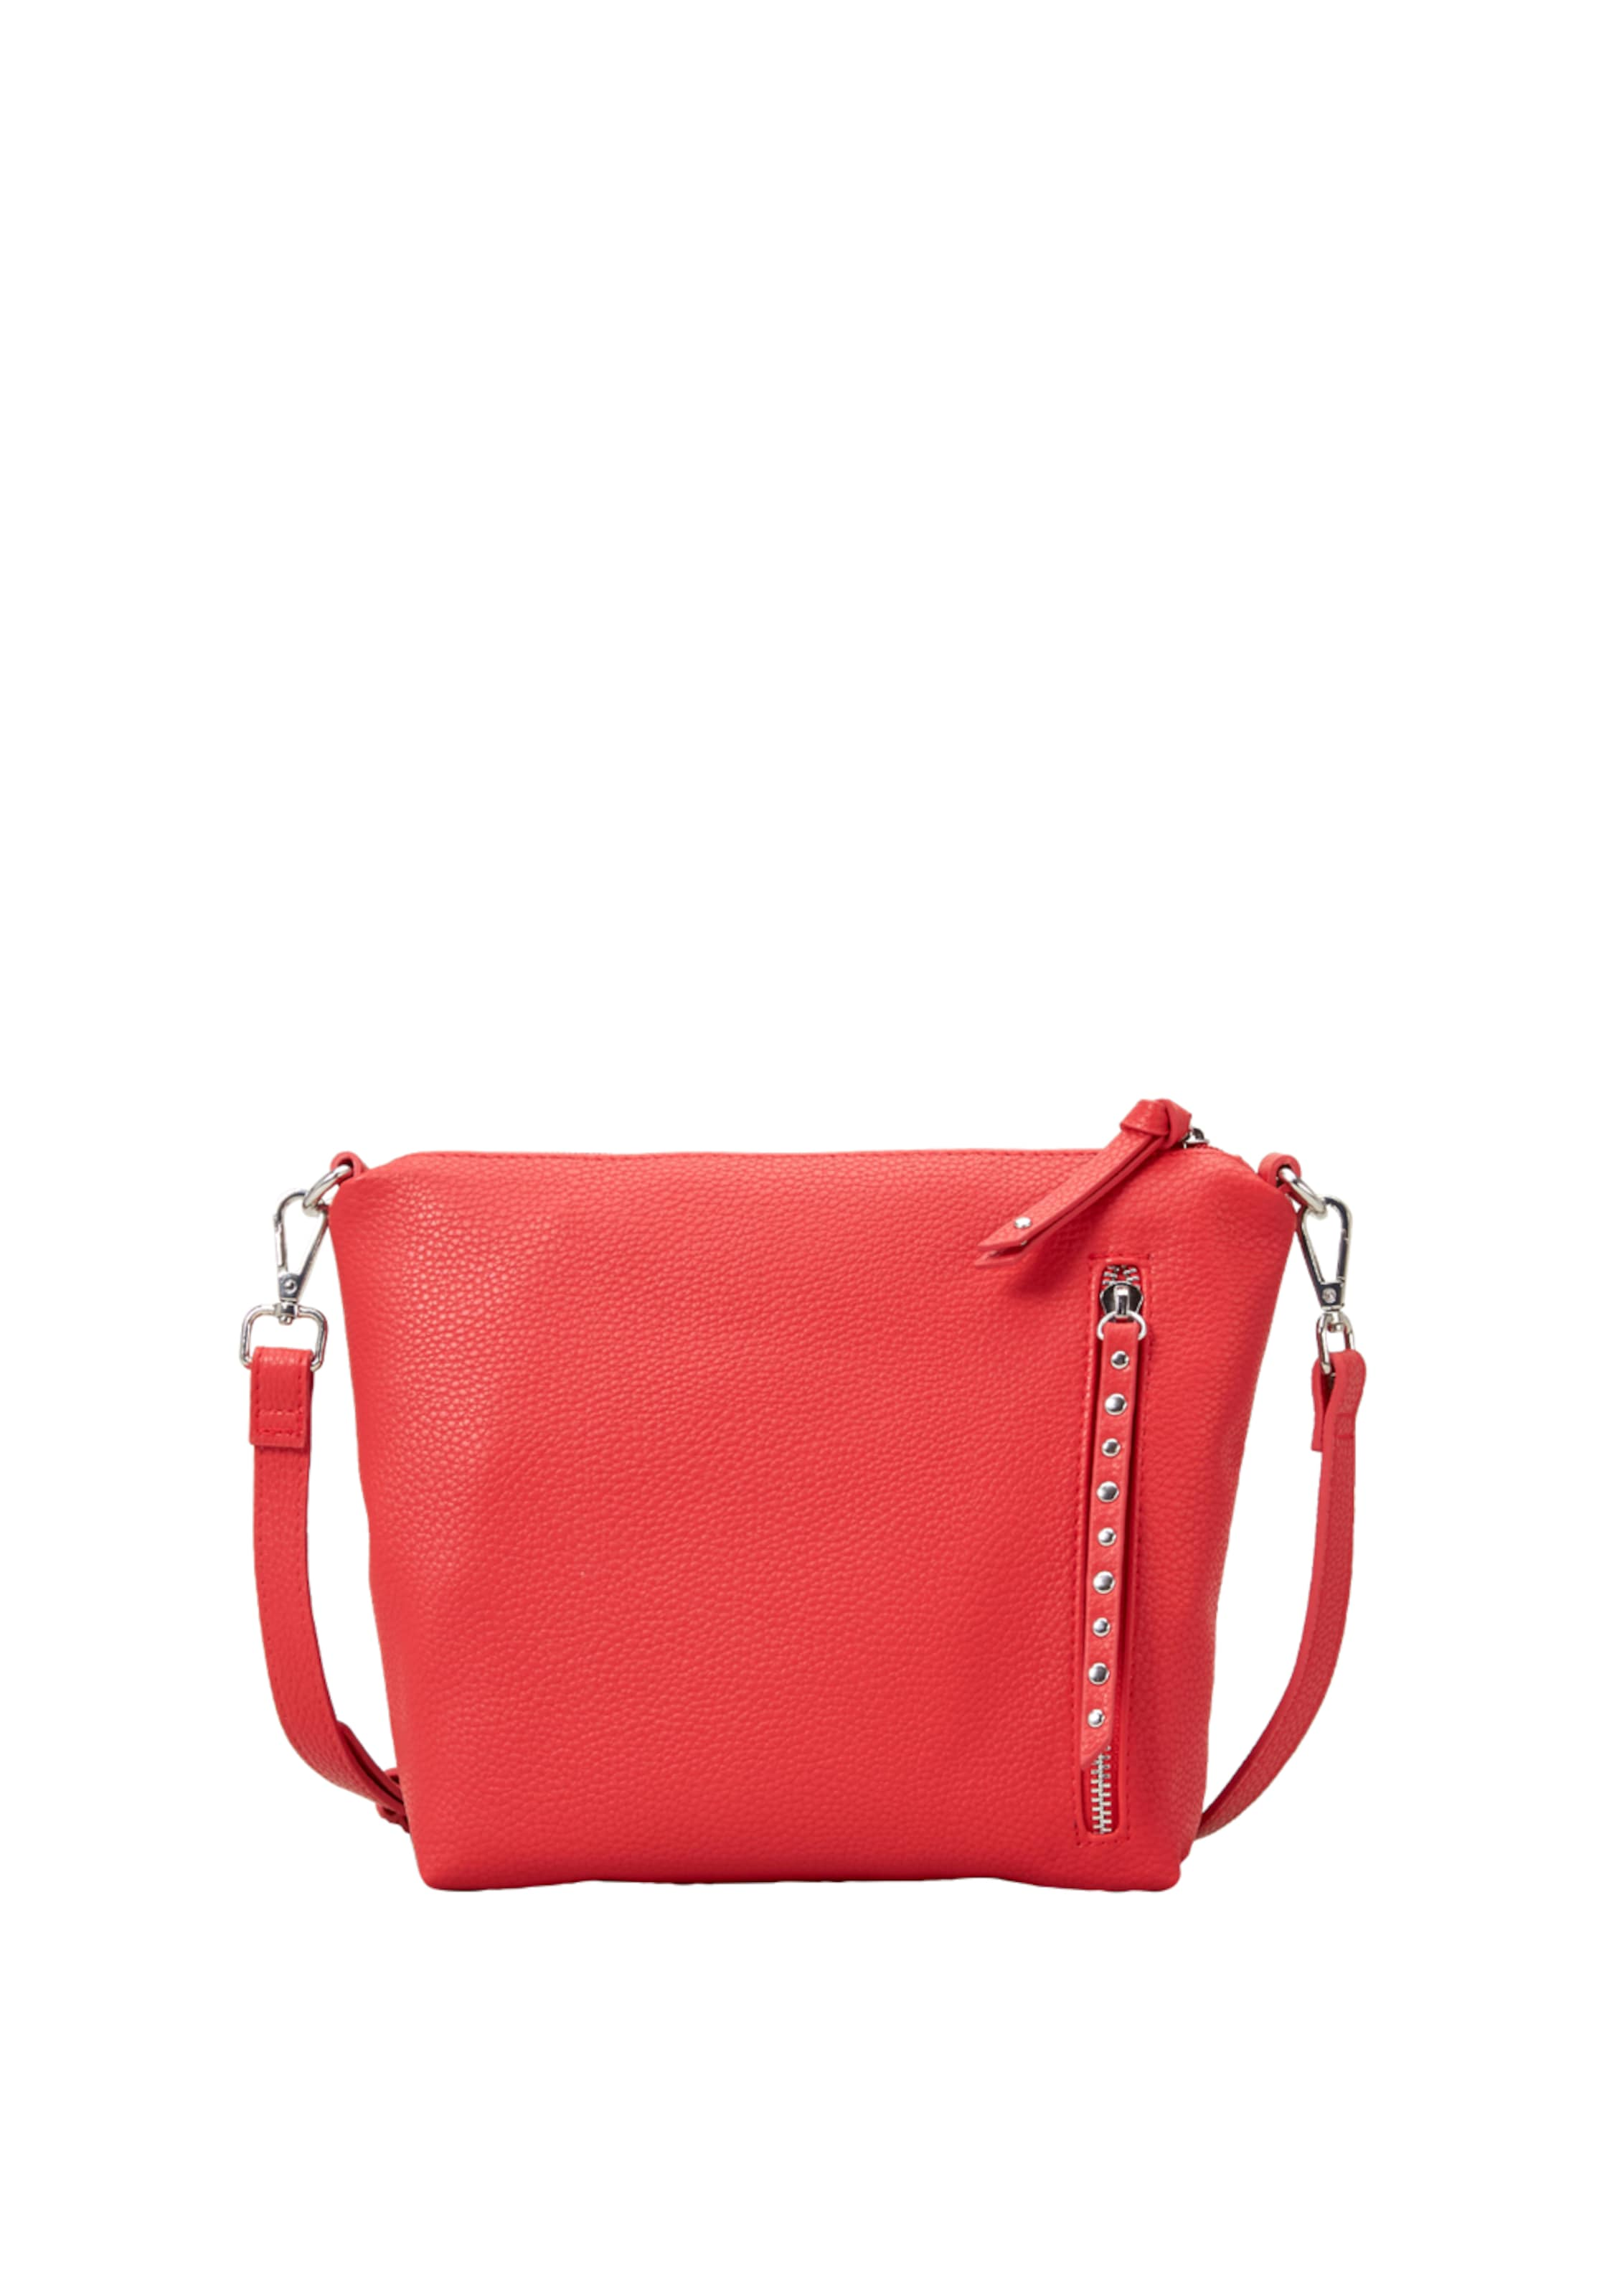 Hellrot oliver Bag In S Red Label DH9IYWE2